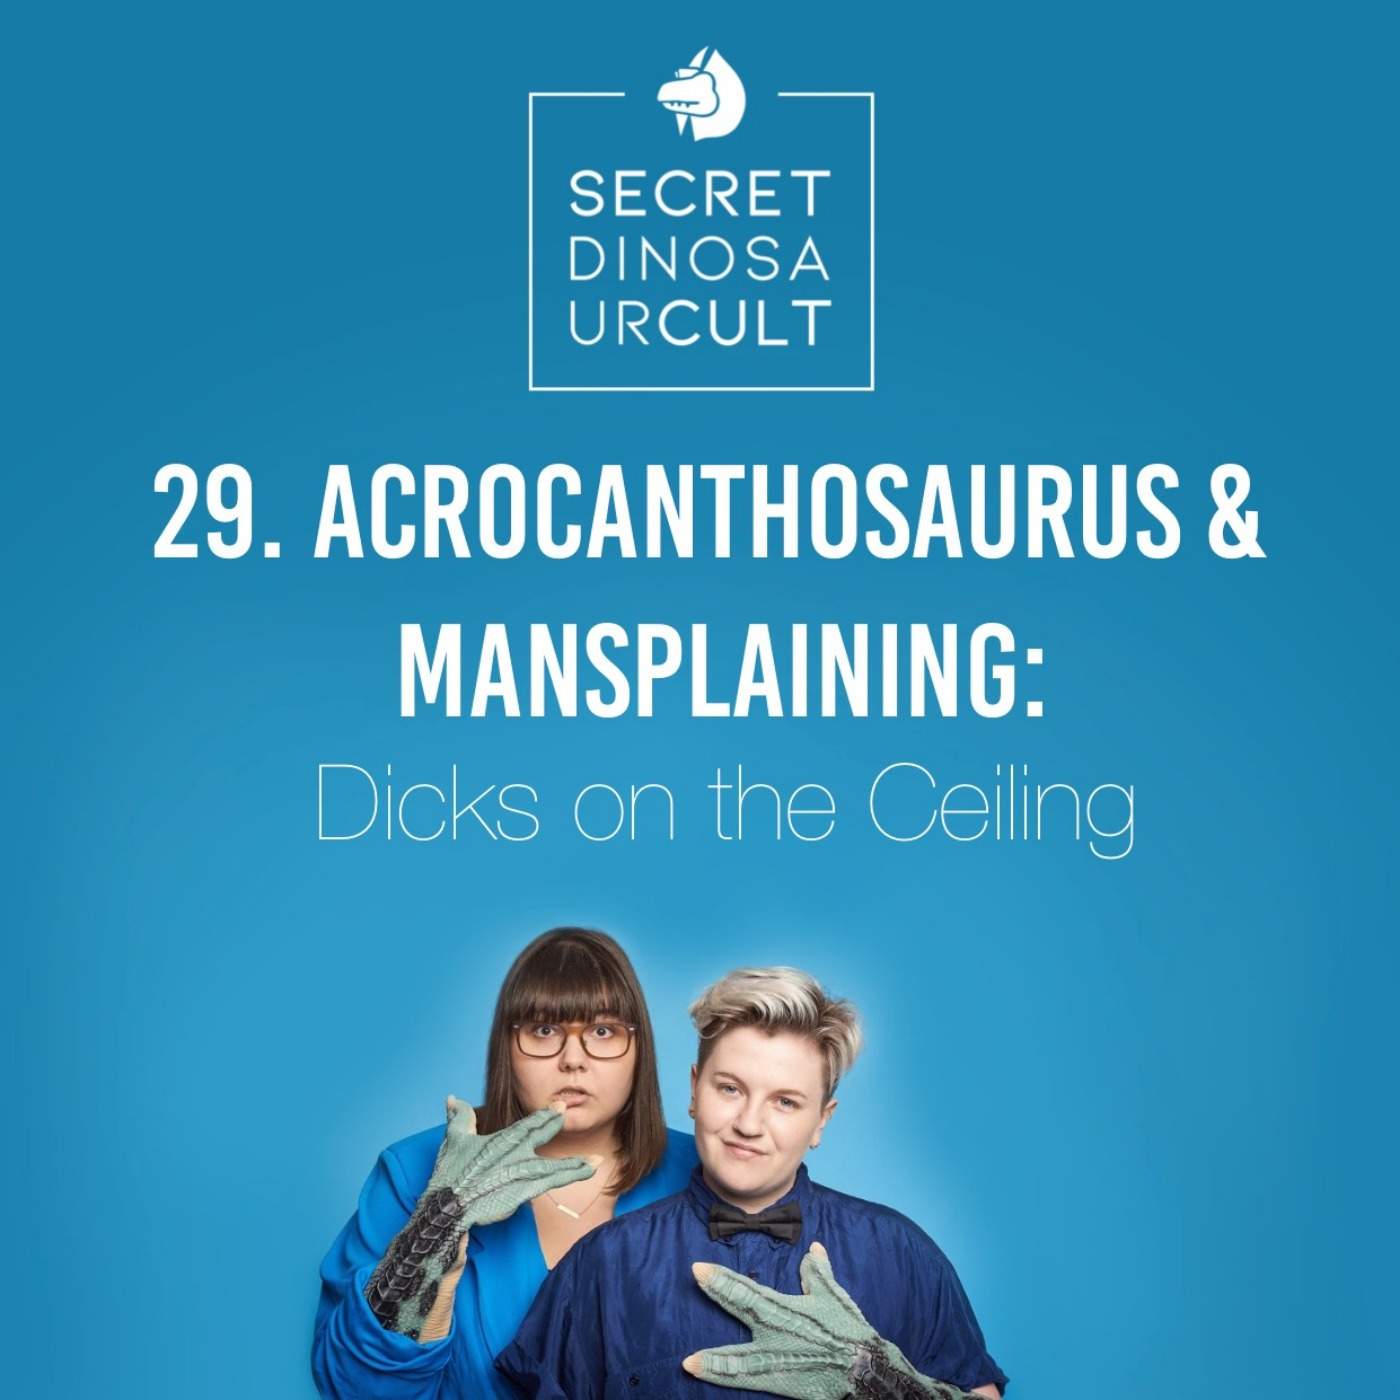 29. Acrocanthosaurus & Mansplaining: Dicks on the Ceiling